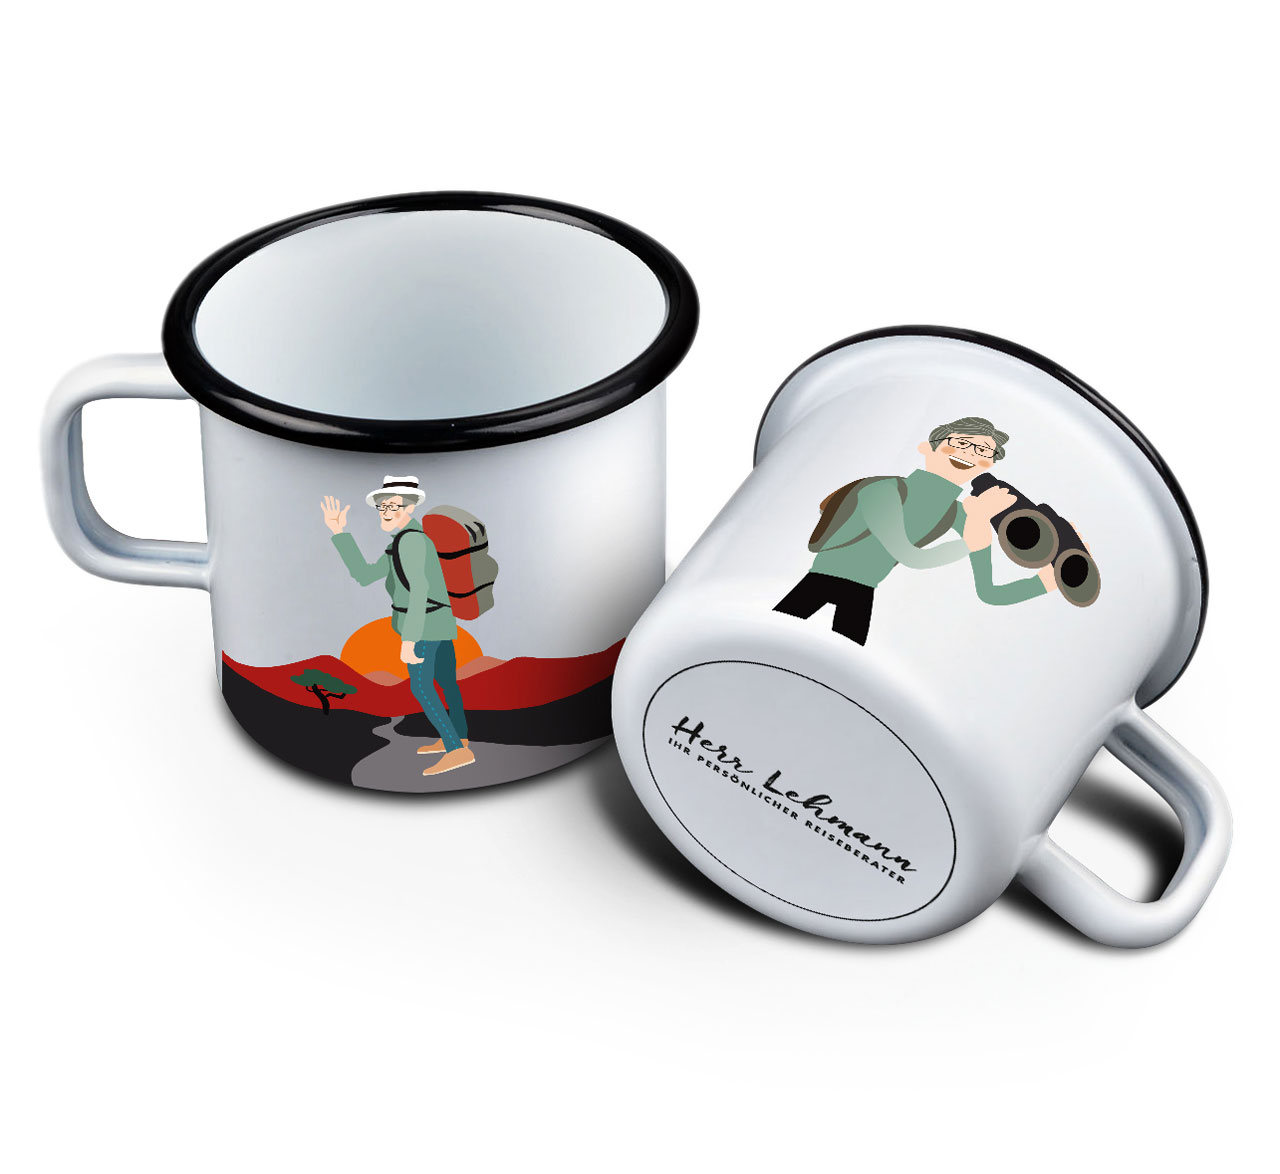 hlehmann_tasse_emaille